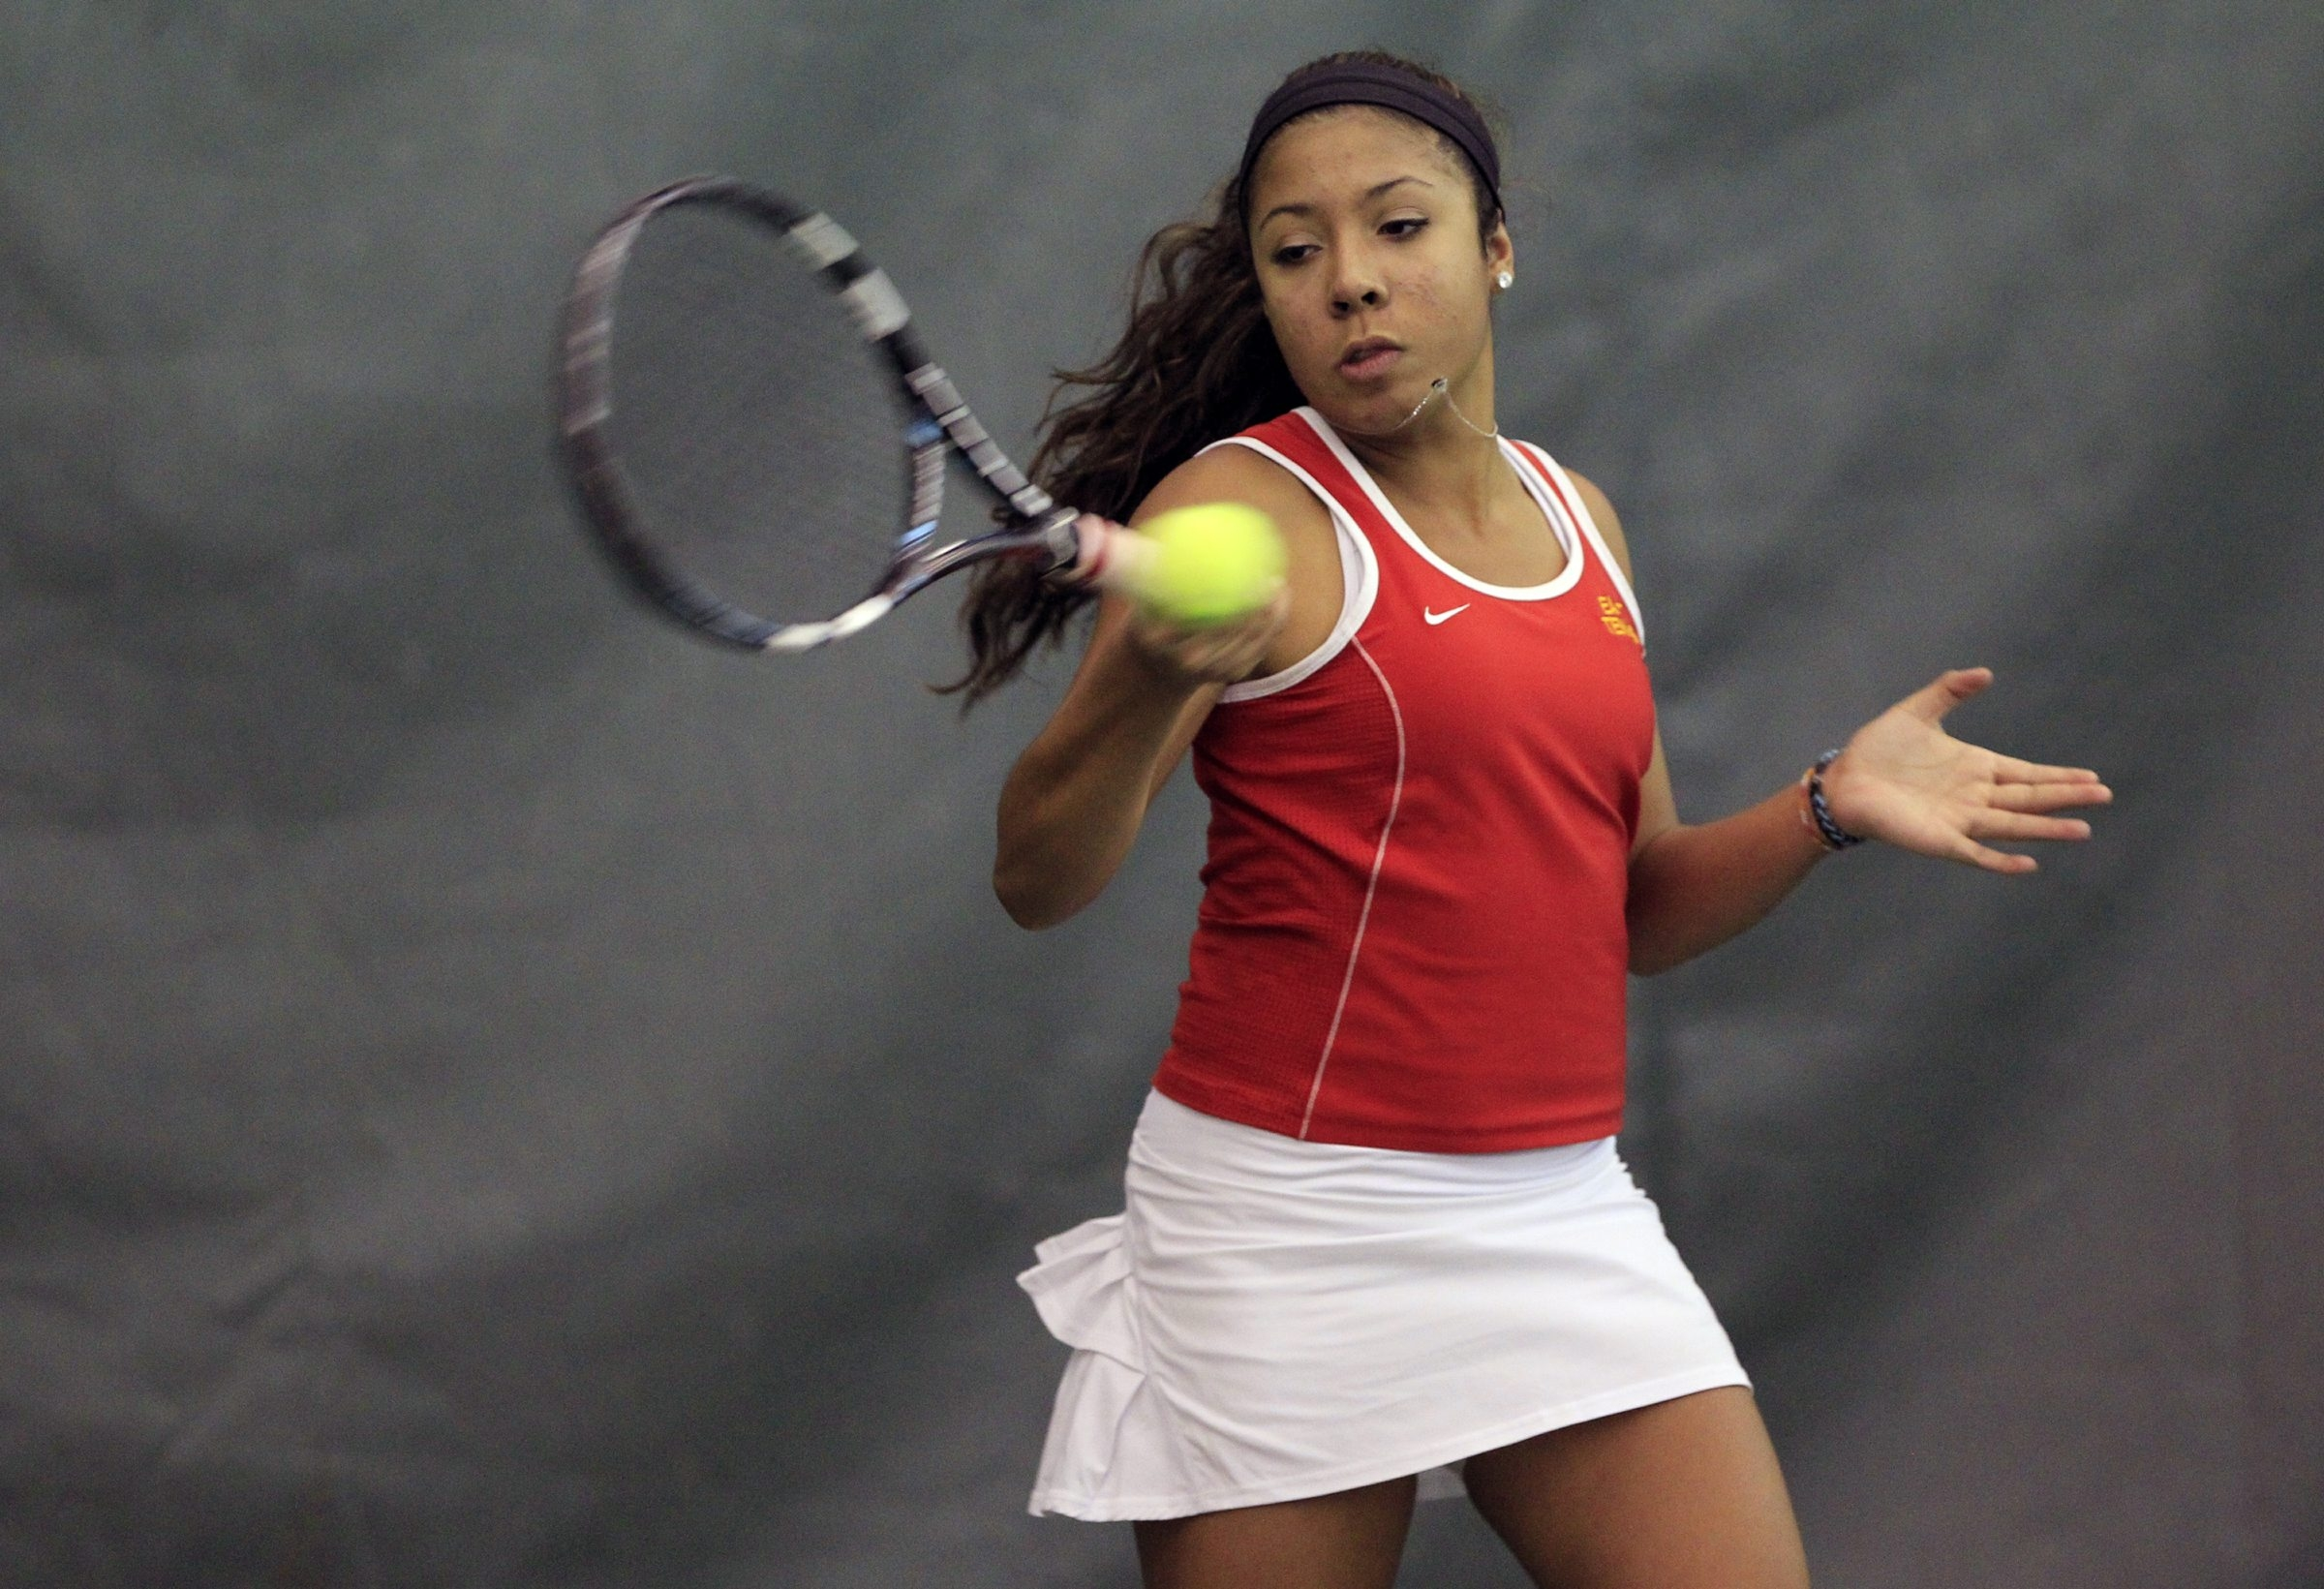 Brianna Gibbs is off to Albany for the state tennis championships after wrapping up her Sectional win on Saturday.